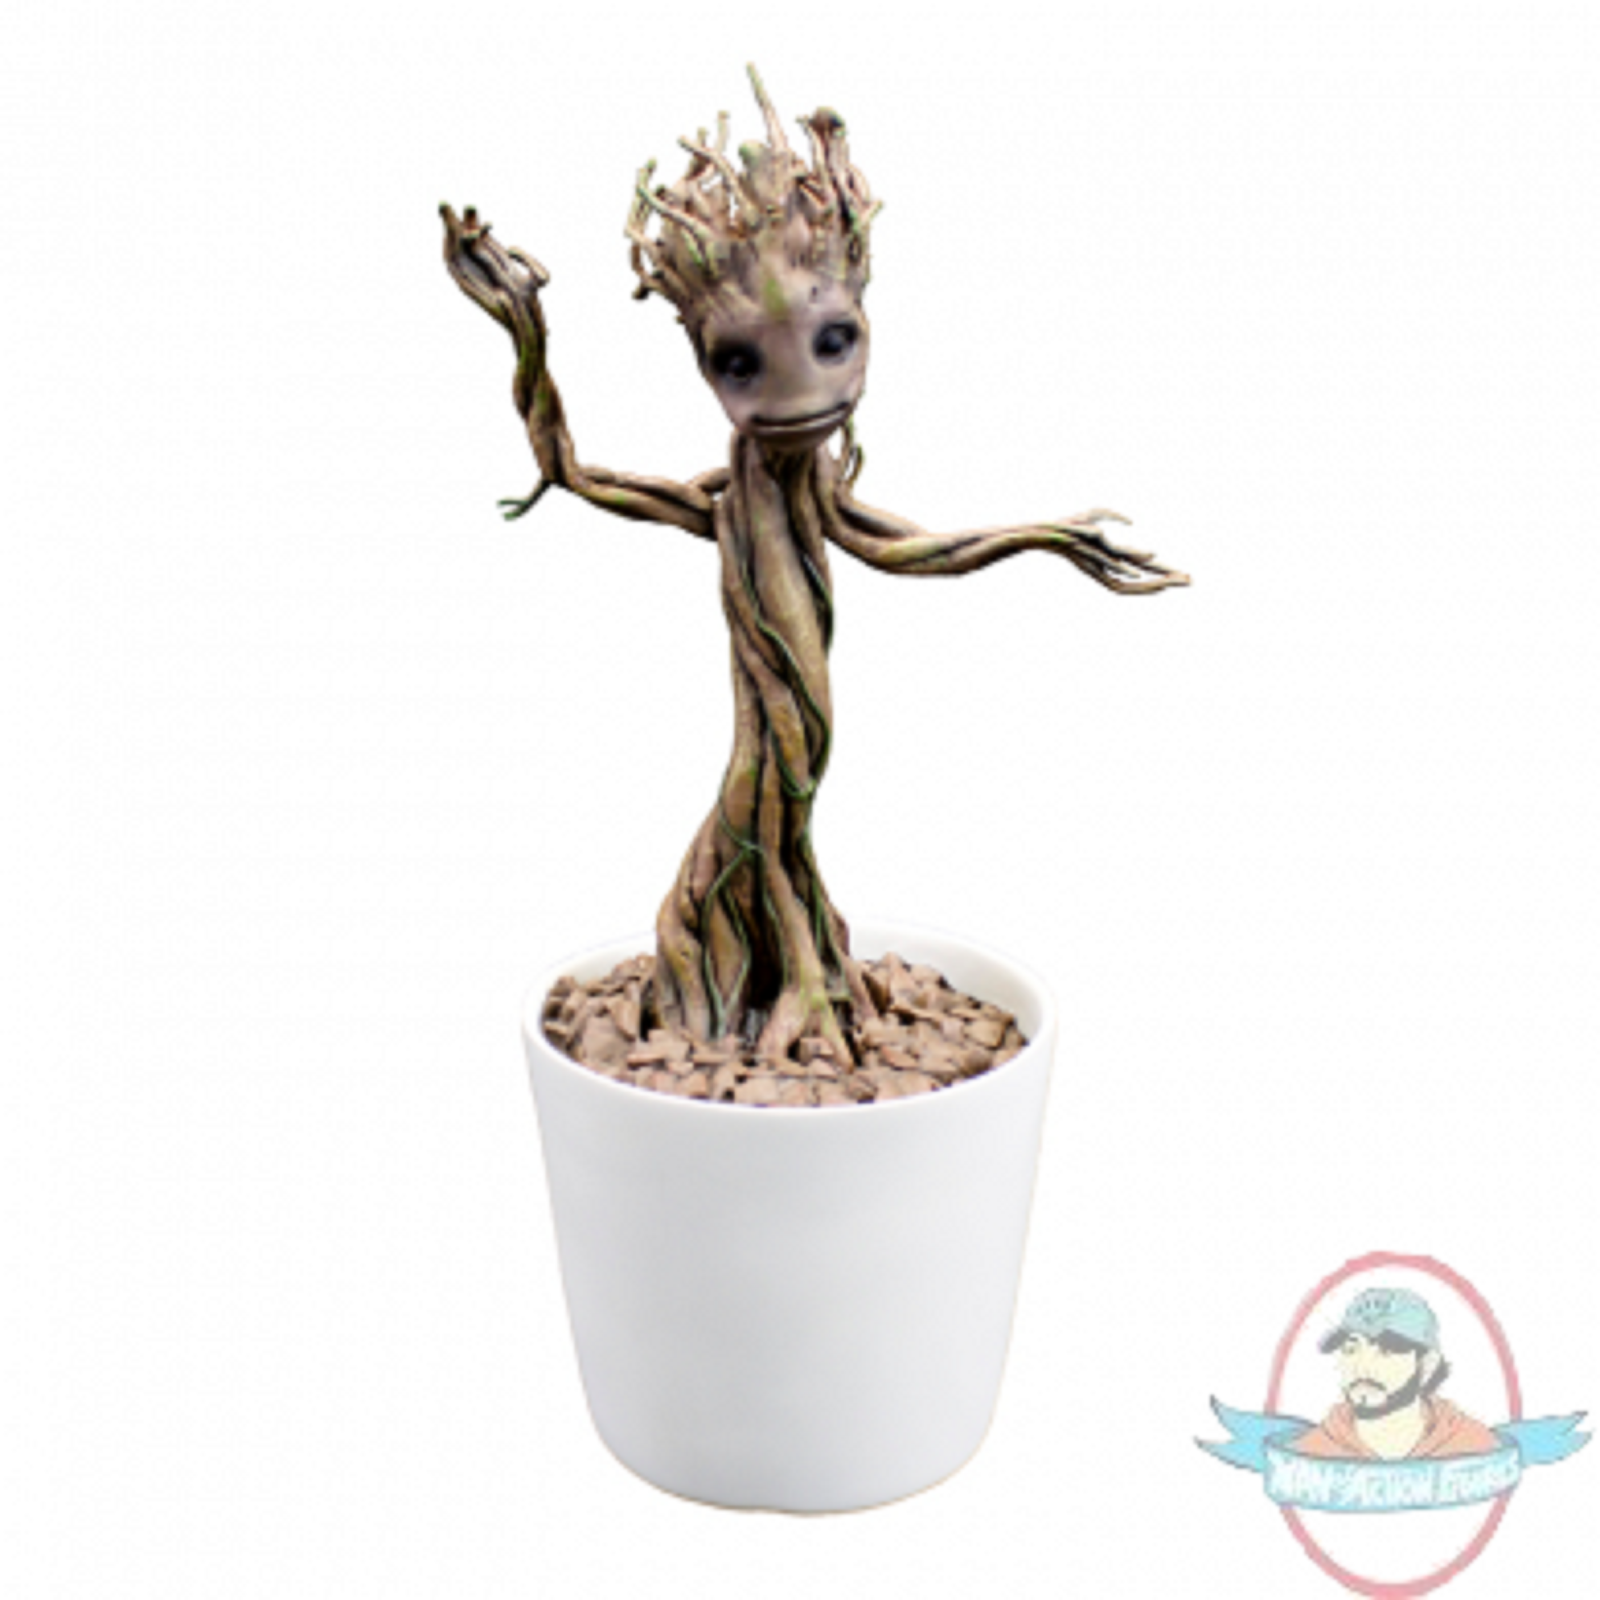 1:1 Guardians of the Galaxy Dancing Groot Premium Motion Factory DAMAGED